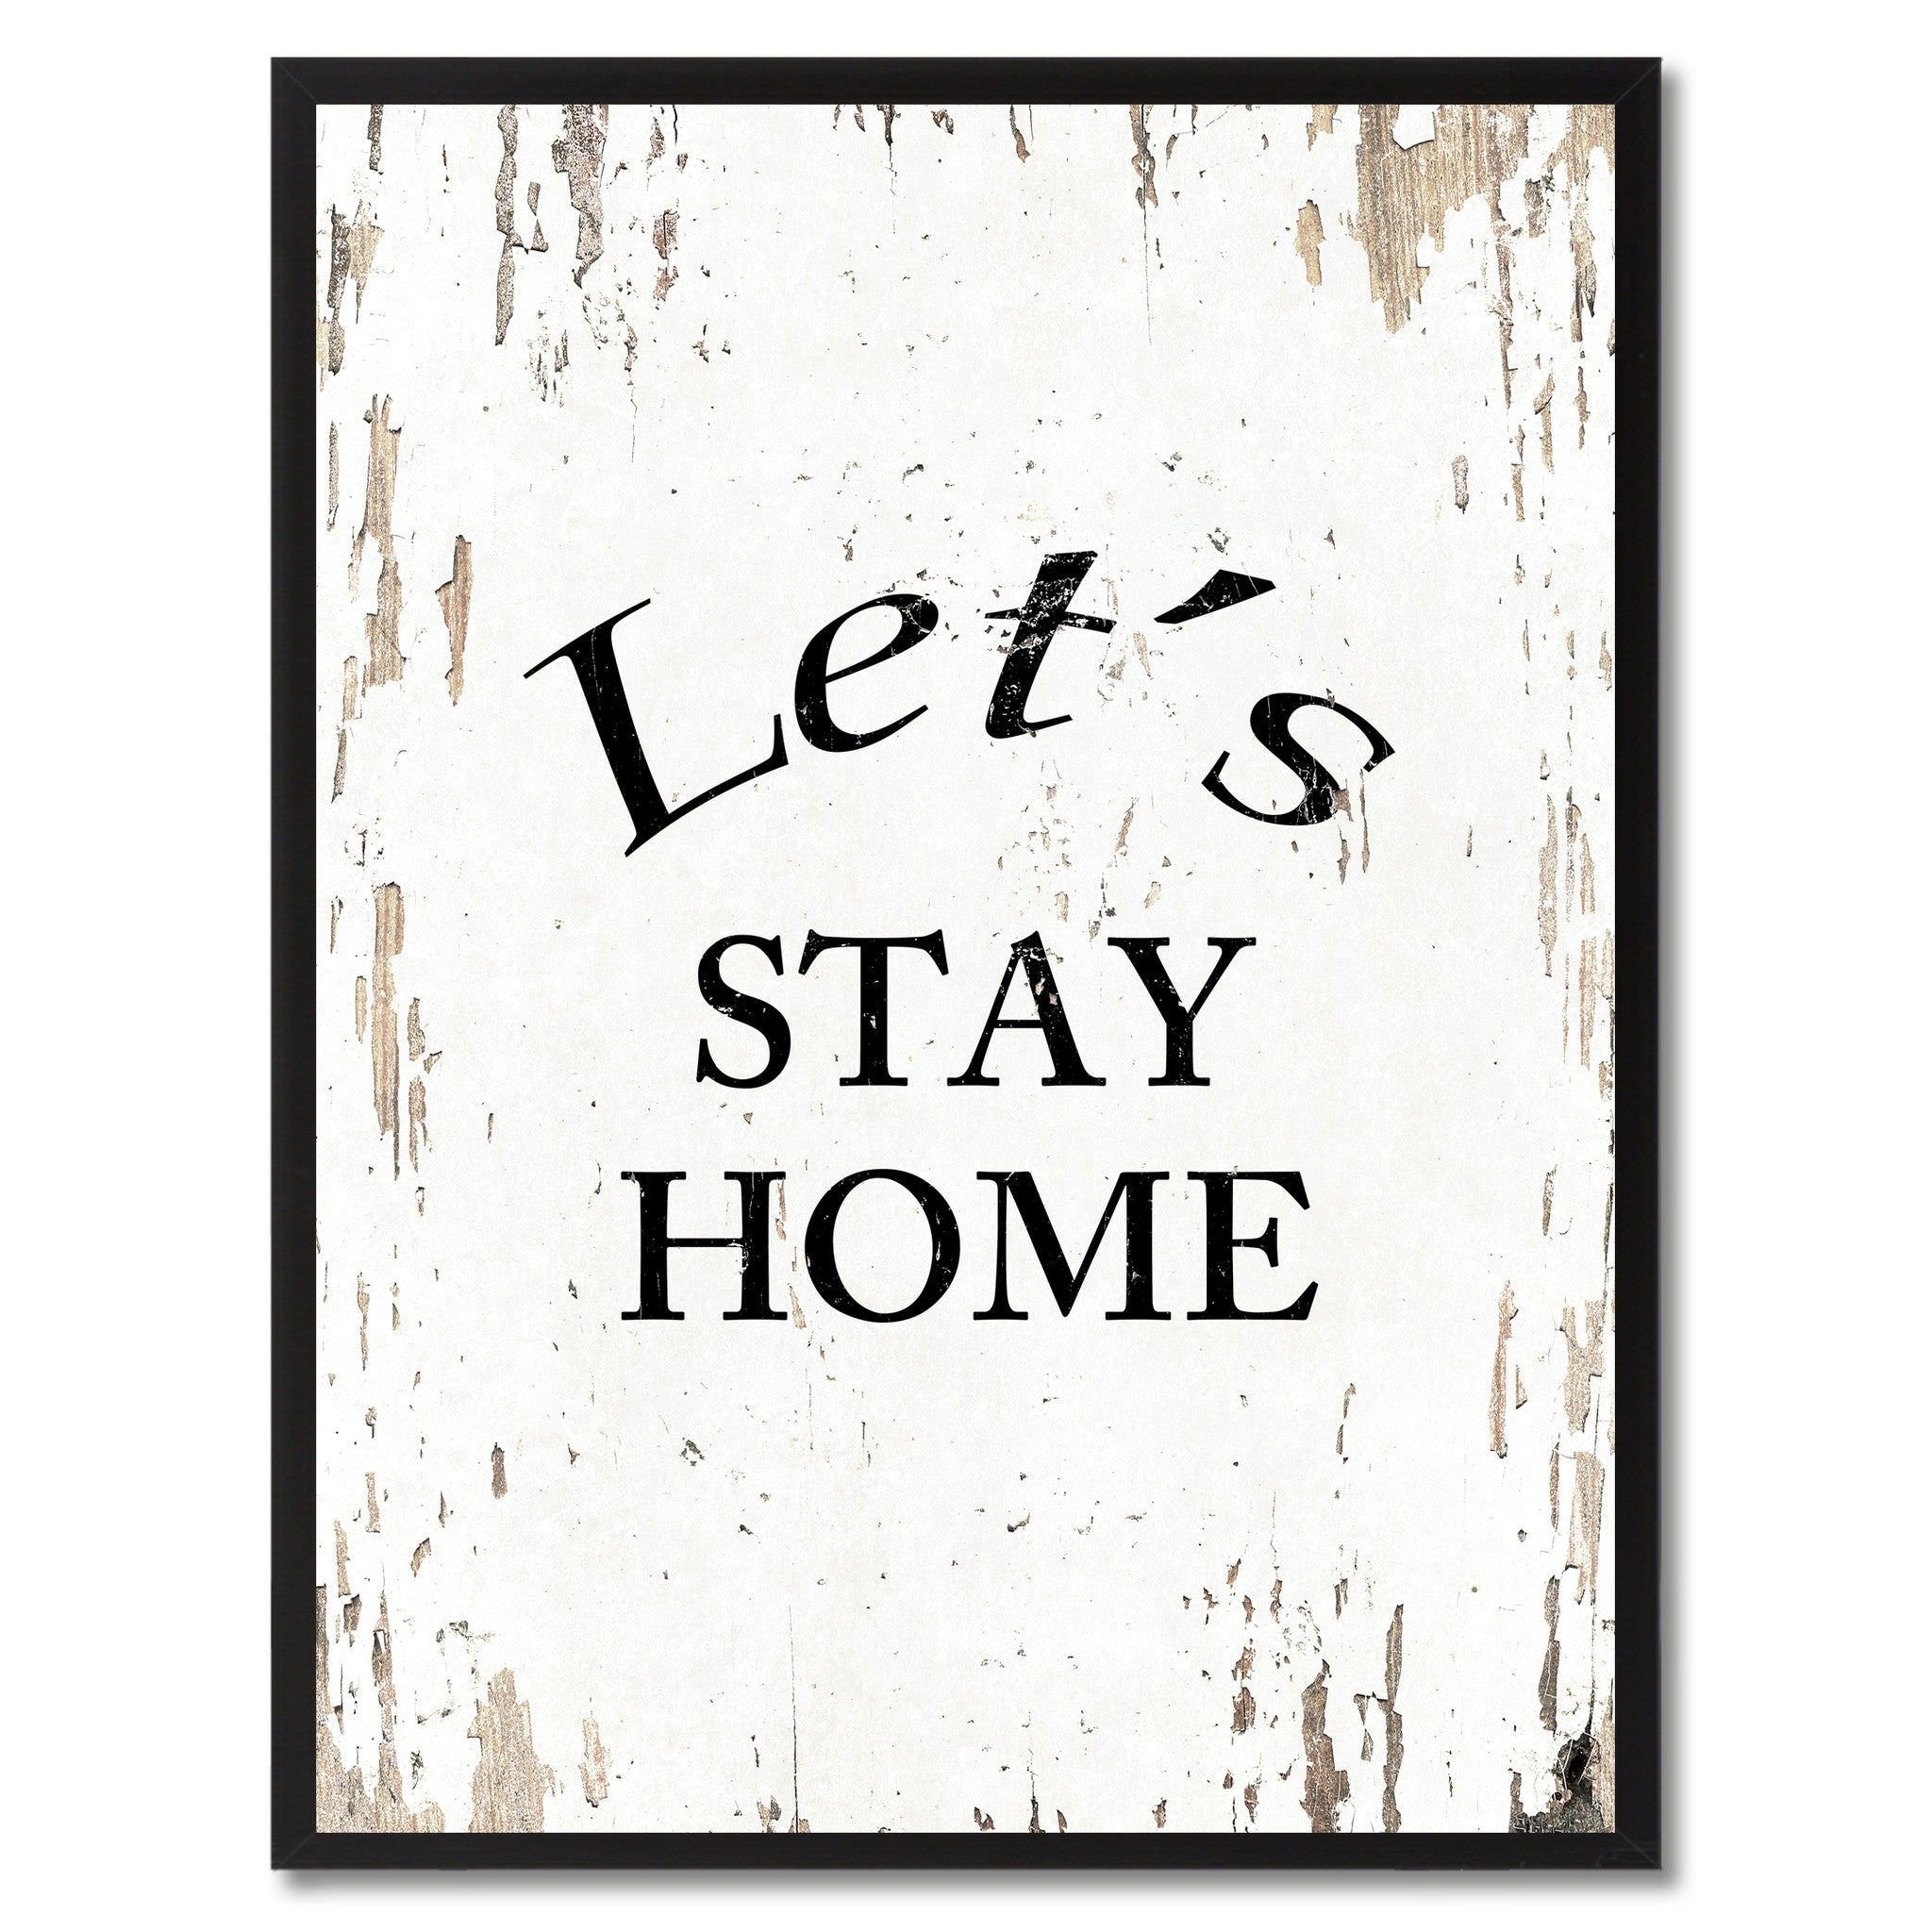 Let's Stay Home Saying Canvas Print, Black Picture Frame Home Decor Wall Art Gifts